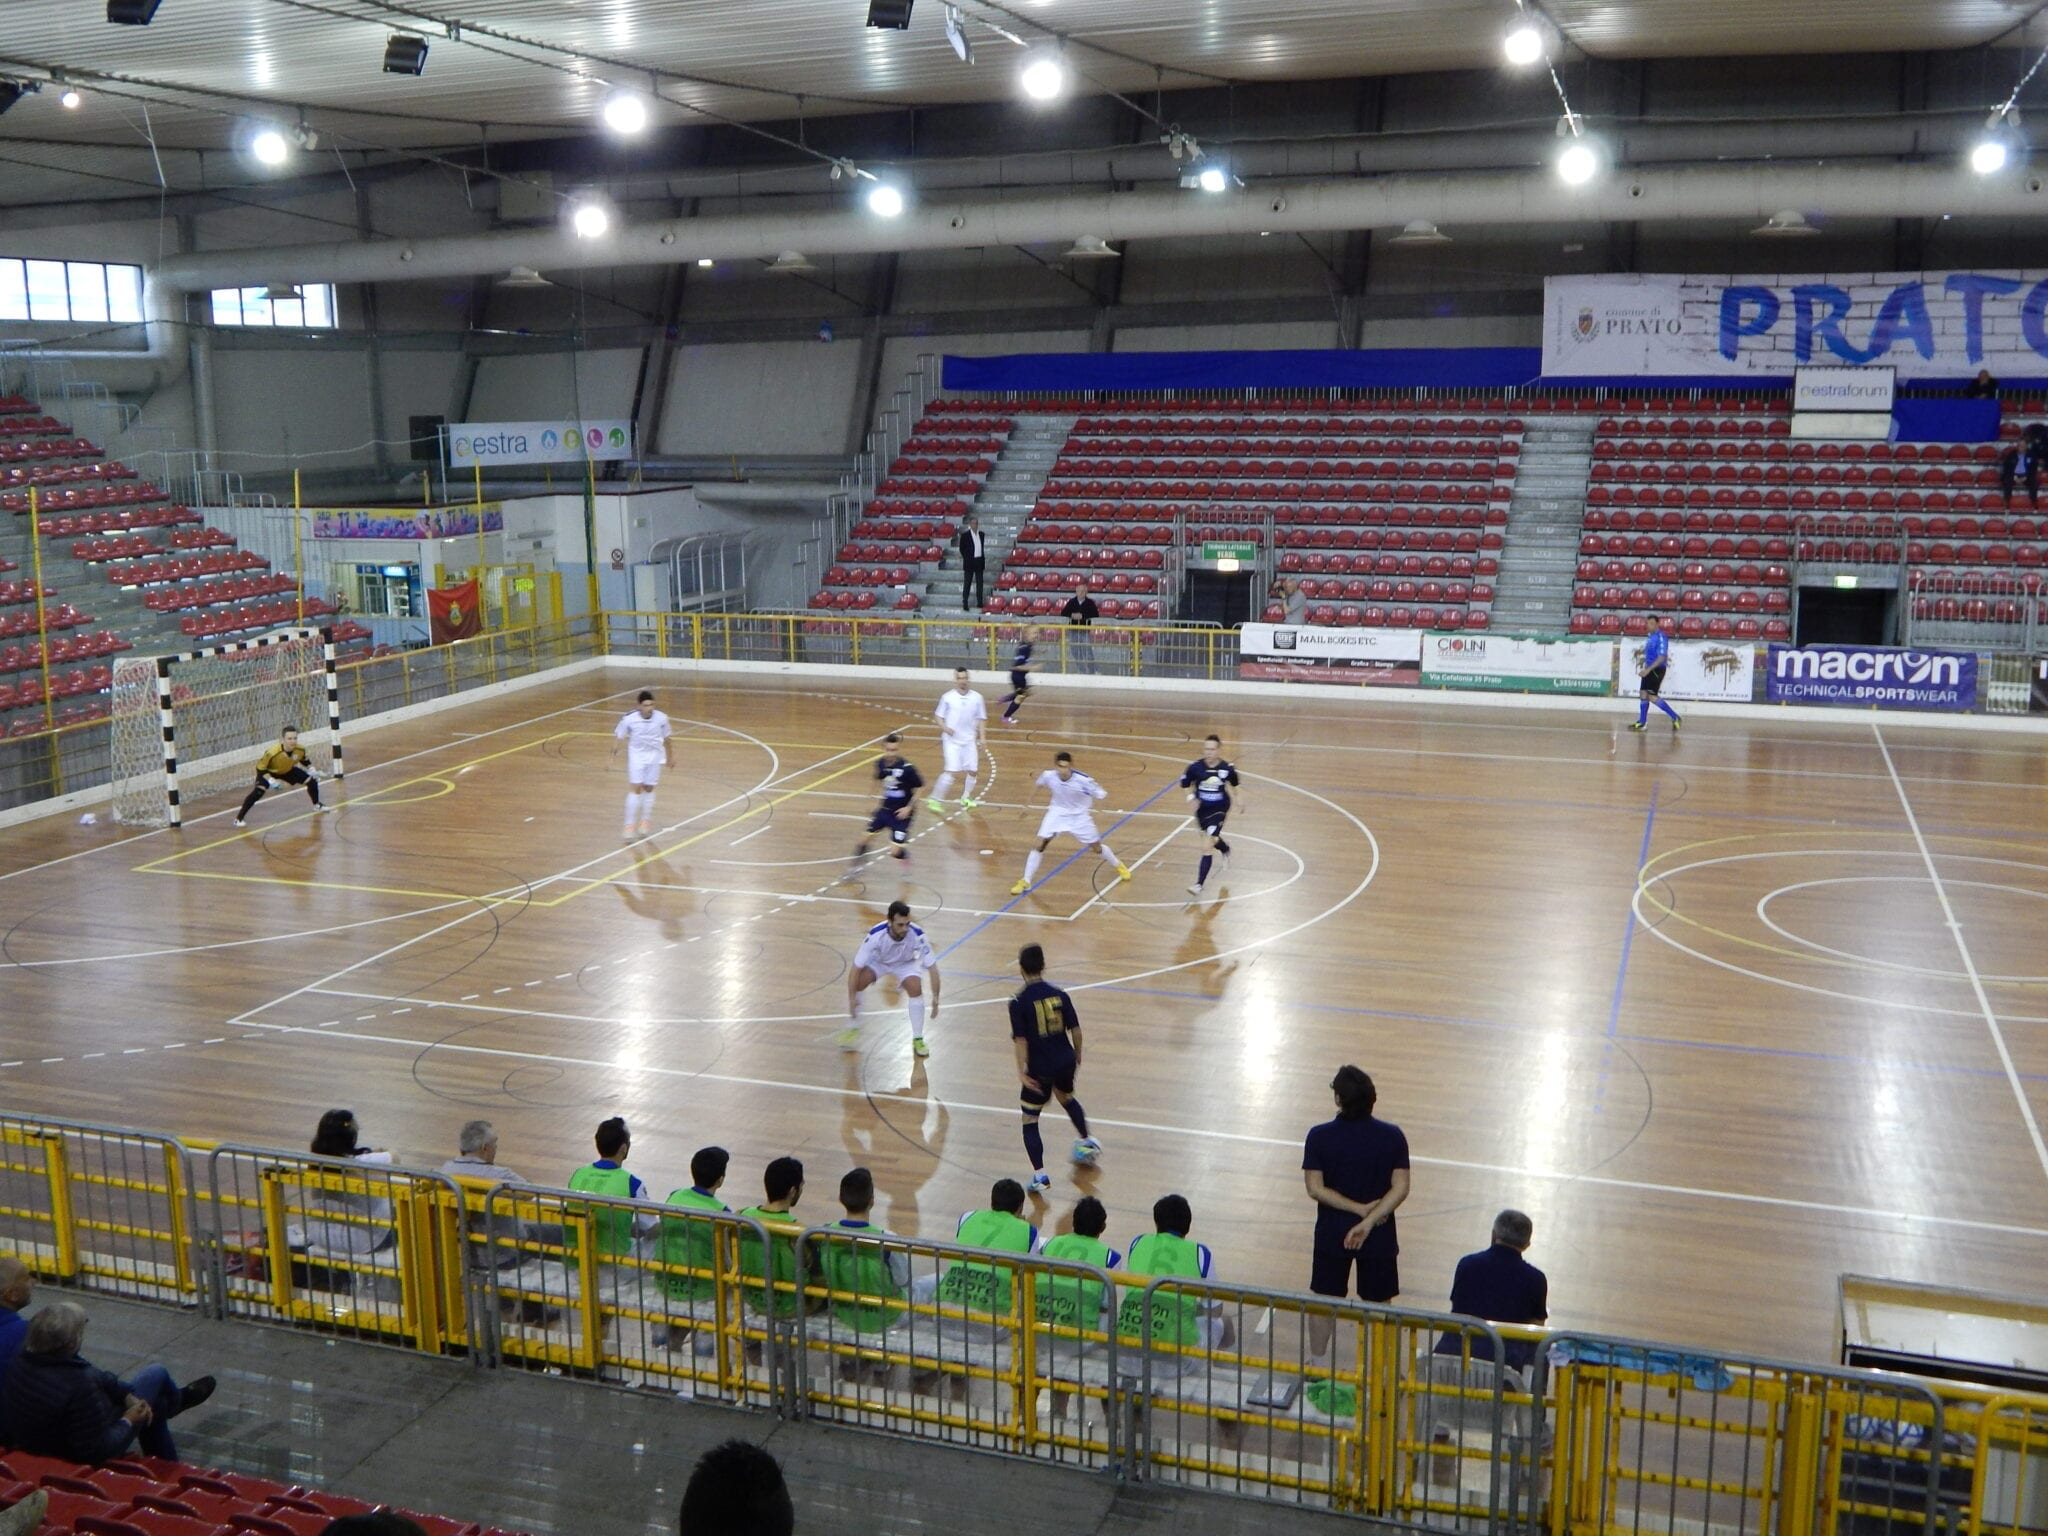 Photo of FUTSAL – Prato da infarto batte Chiuppano sulla sirena